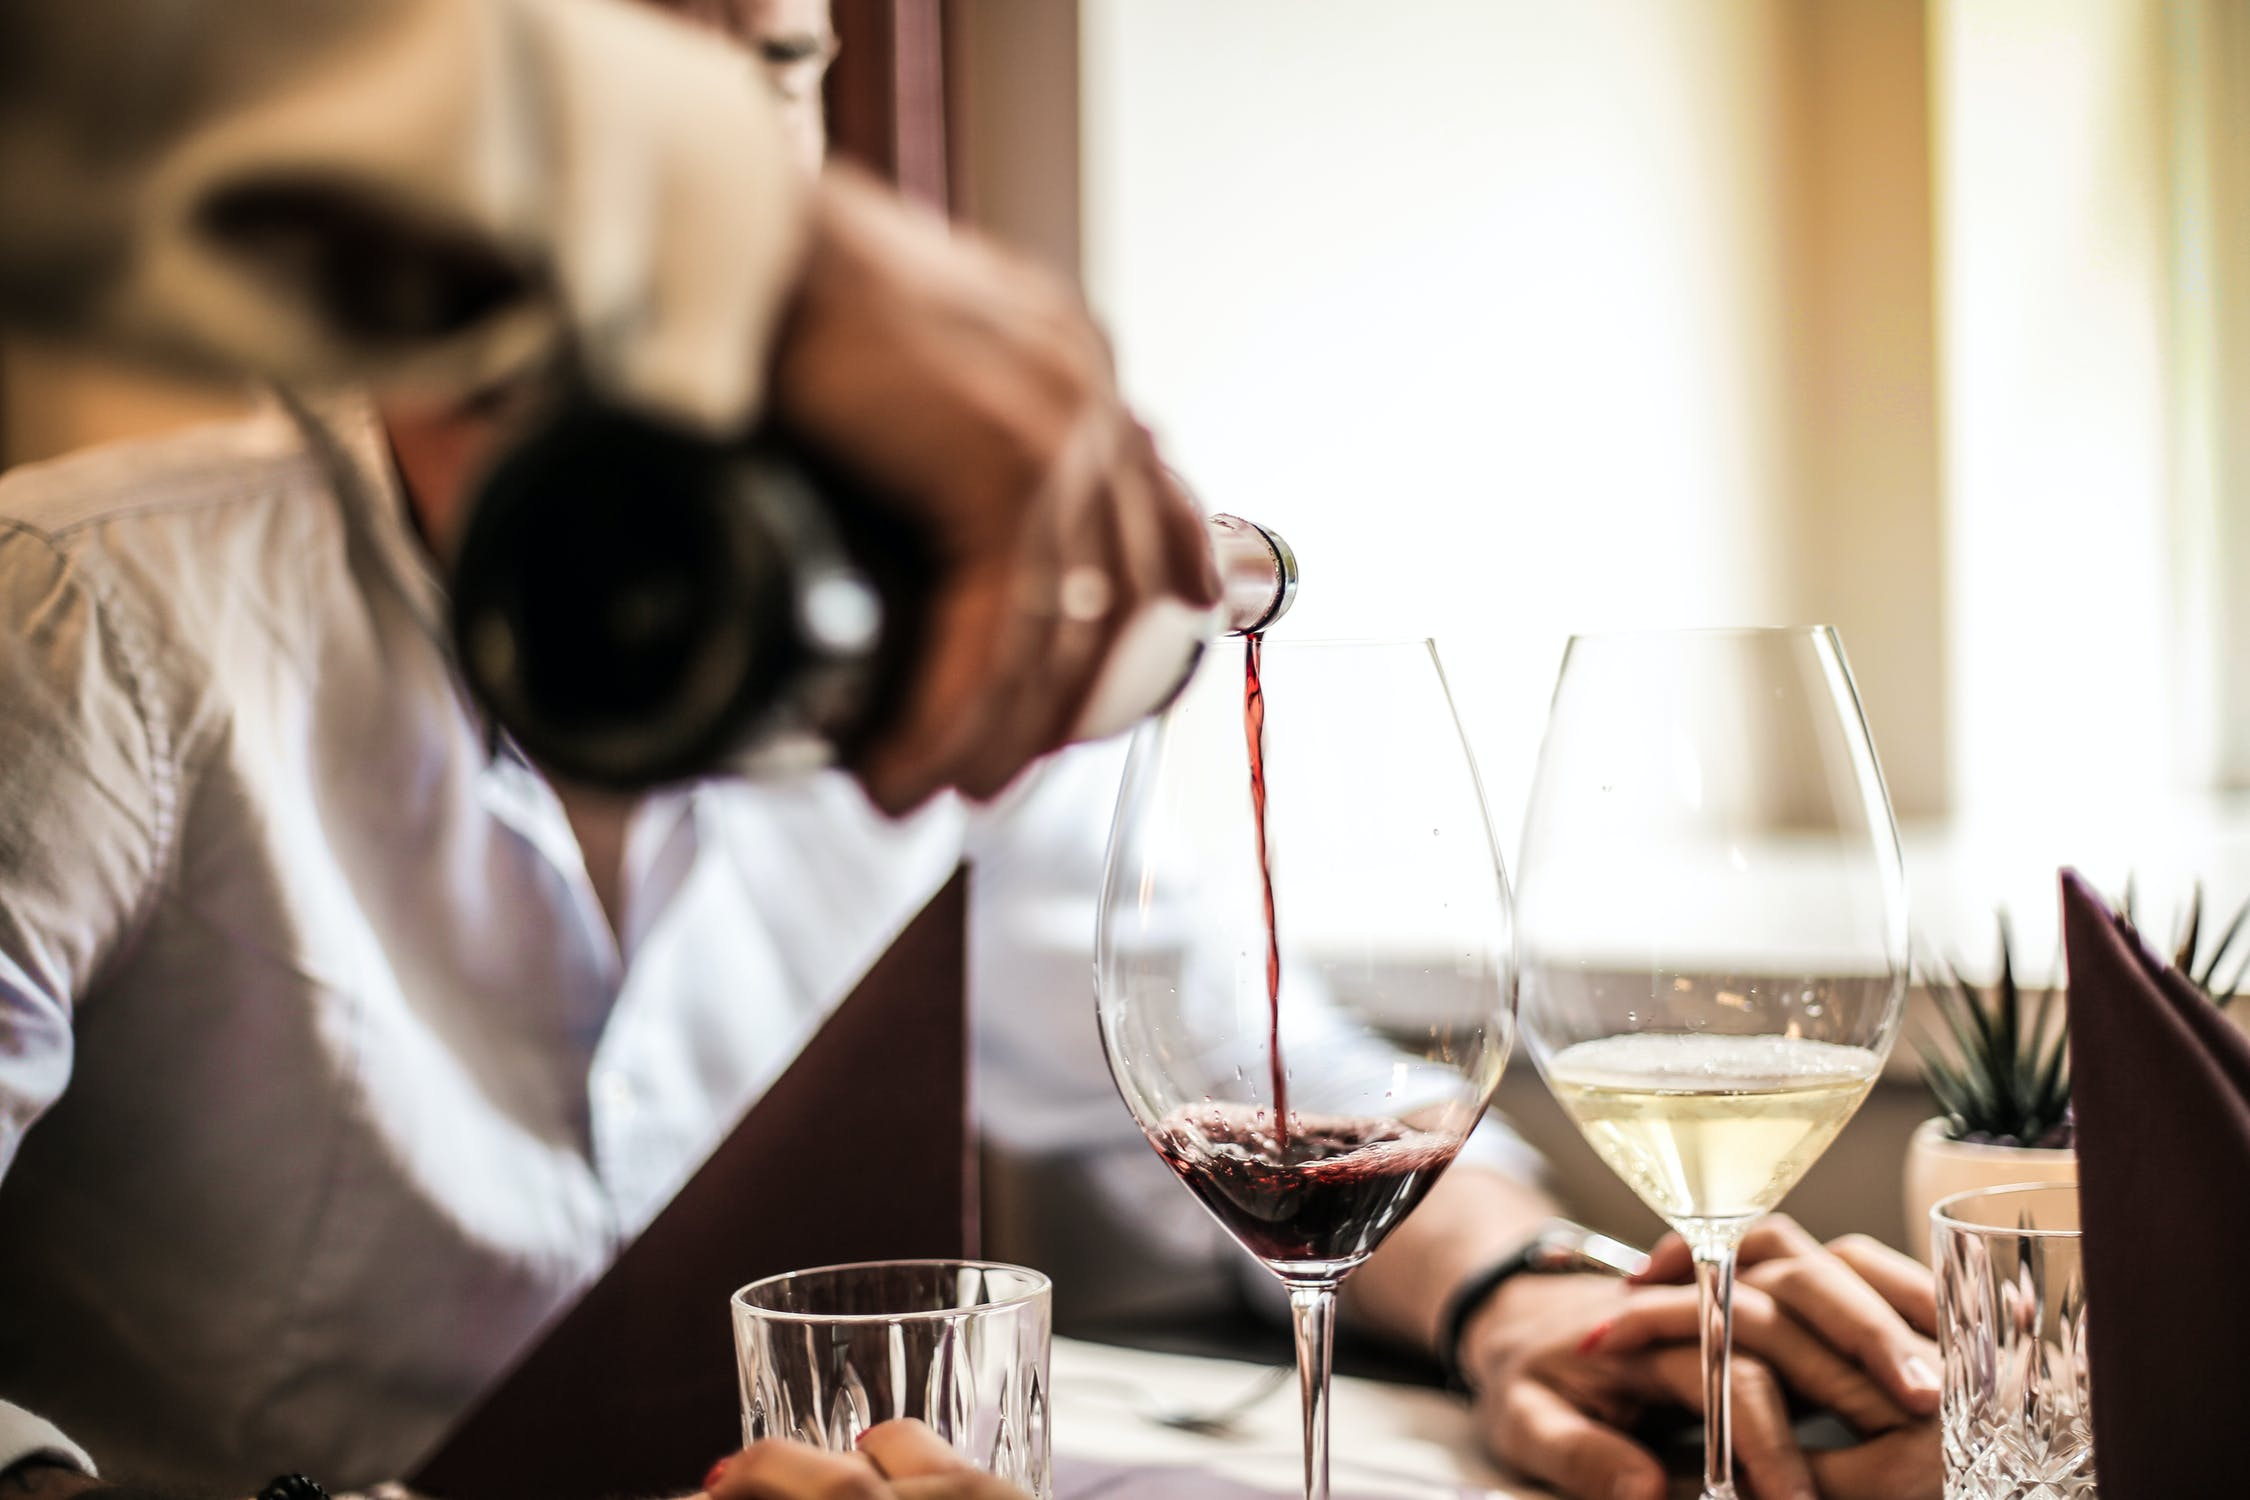 How to get a career in wine by acing the WSET Level 2 exam